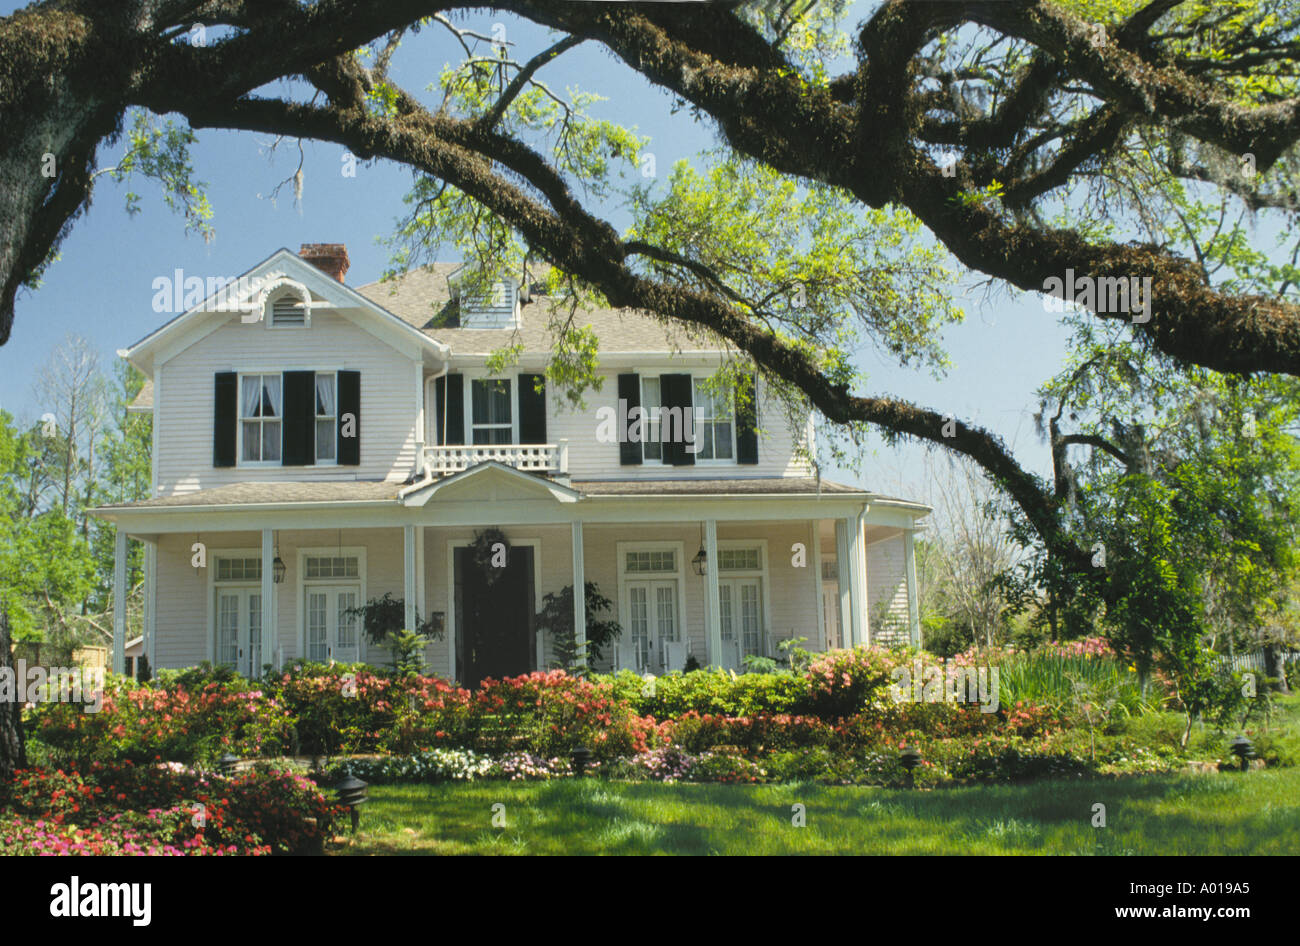 Large high end Victorian style home with wide porches and landscaped garden framed by mature live Oak tree, Louisiana USA - Stock Image